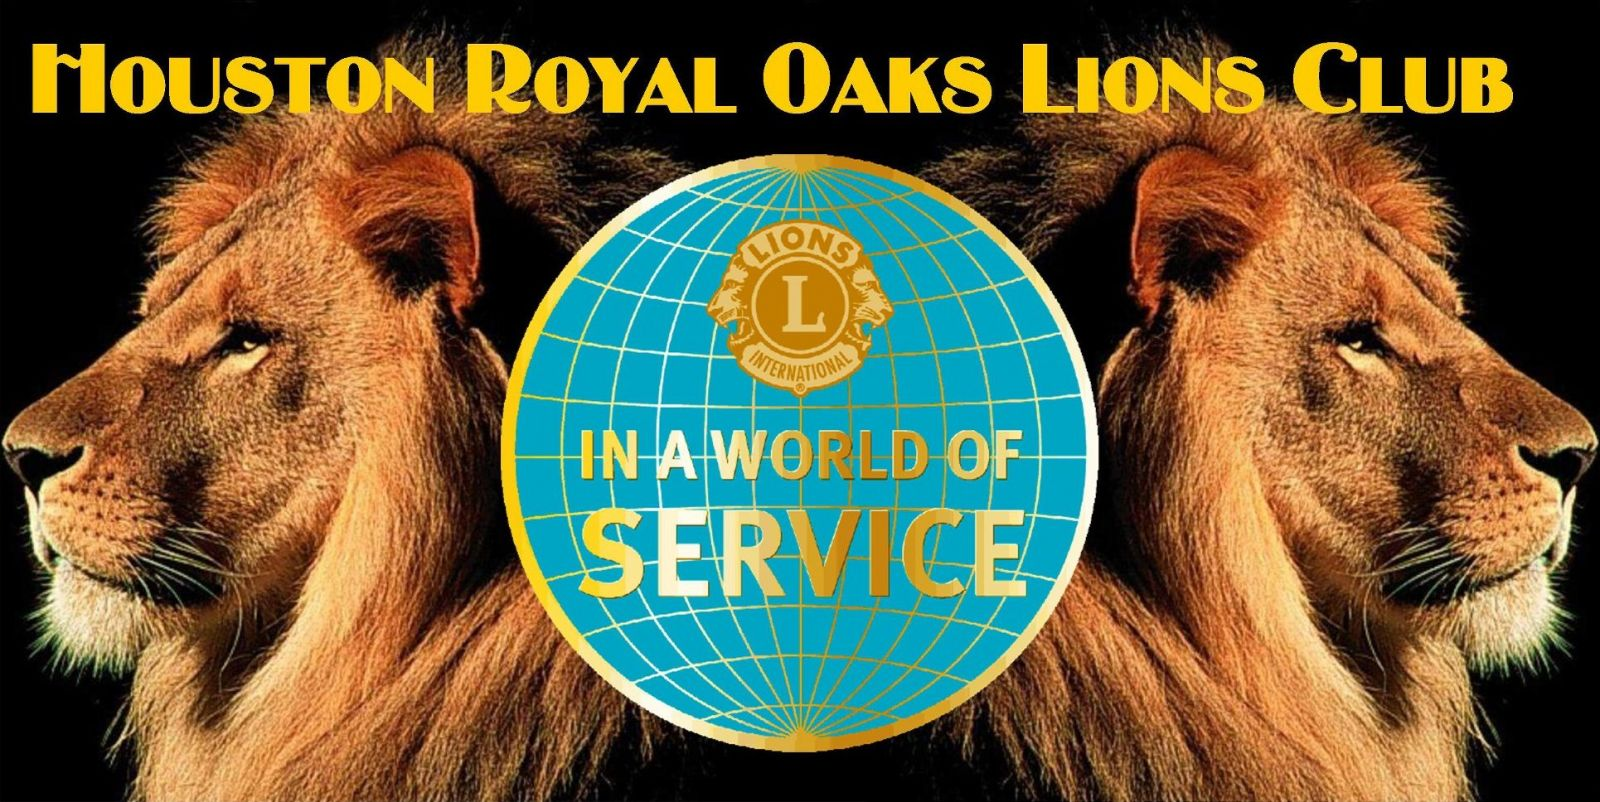 Houston Royal Oaks Lions Club